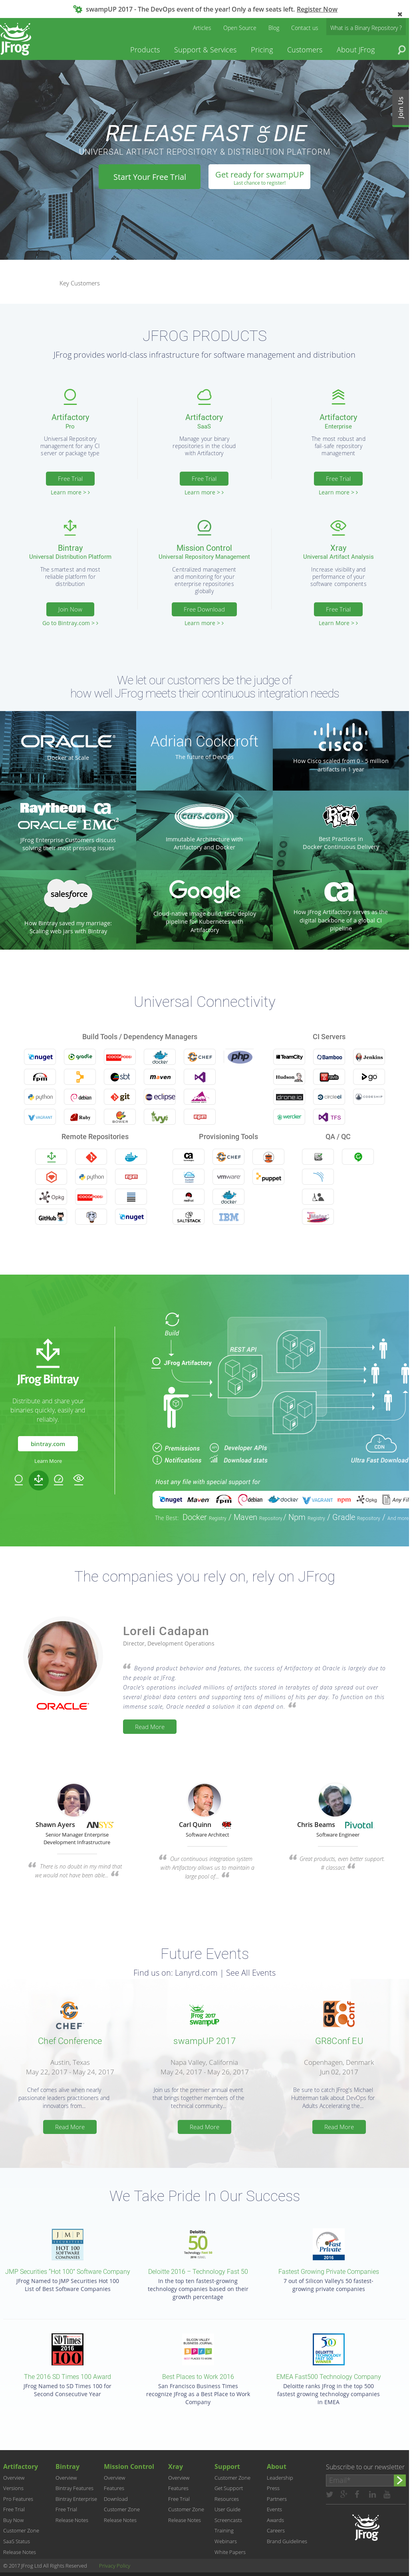 JFrog Competitors, Revenue and Employees - Owler Company Profile